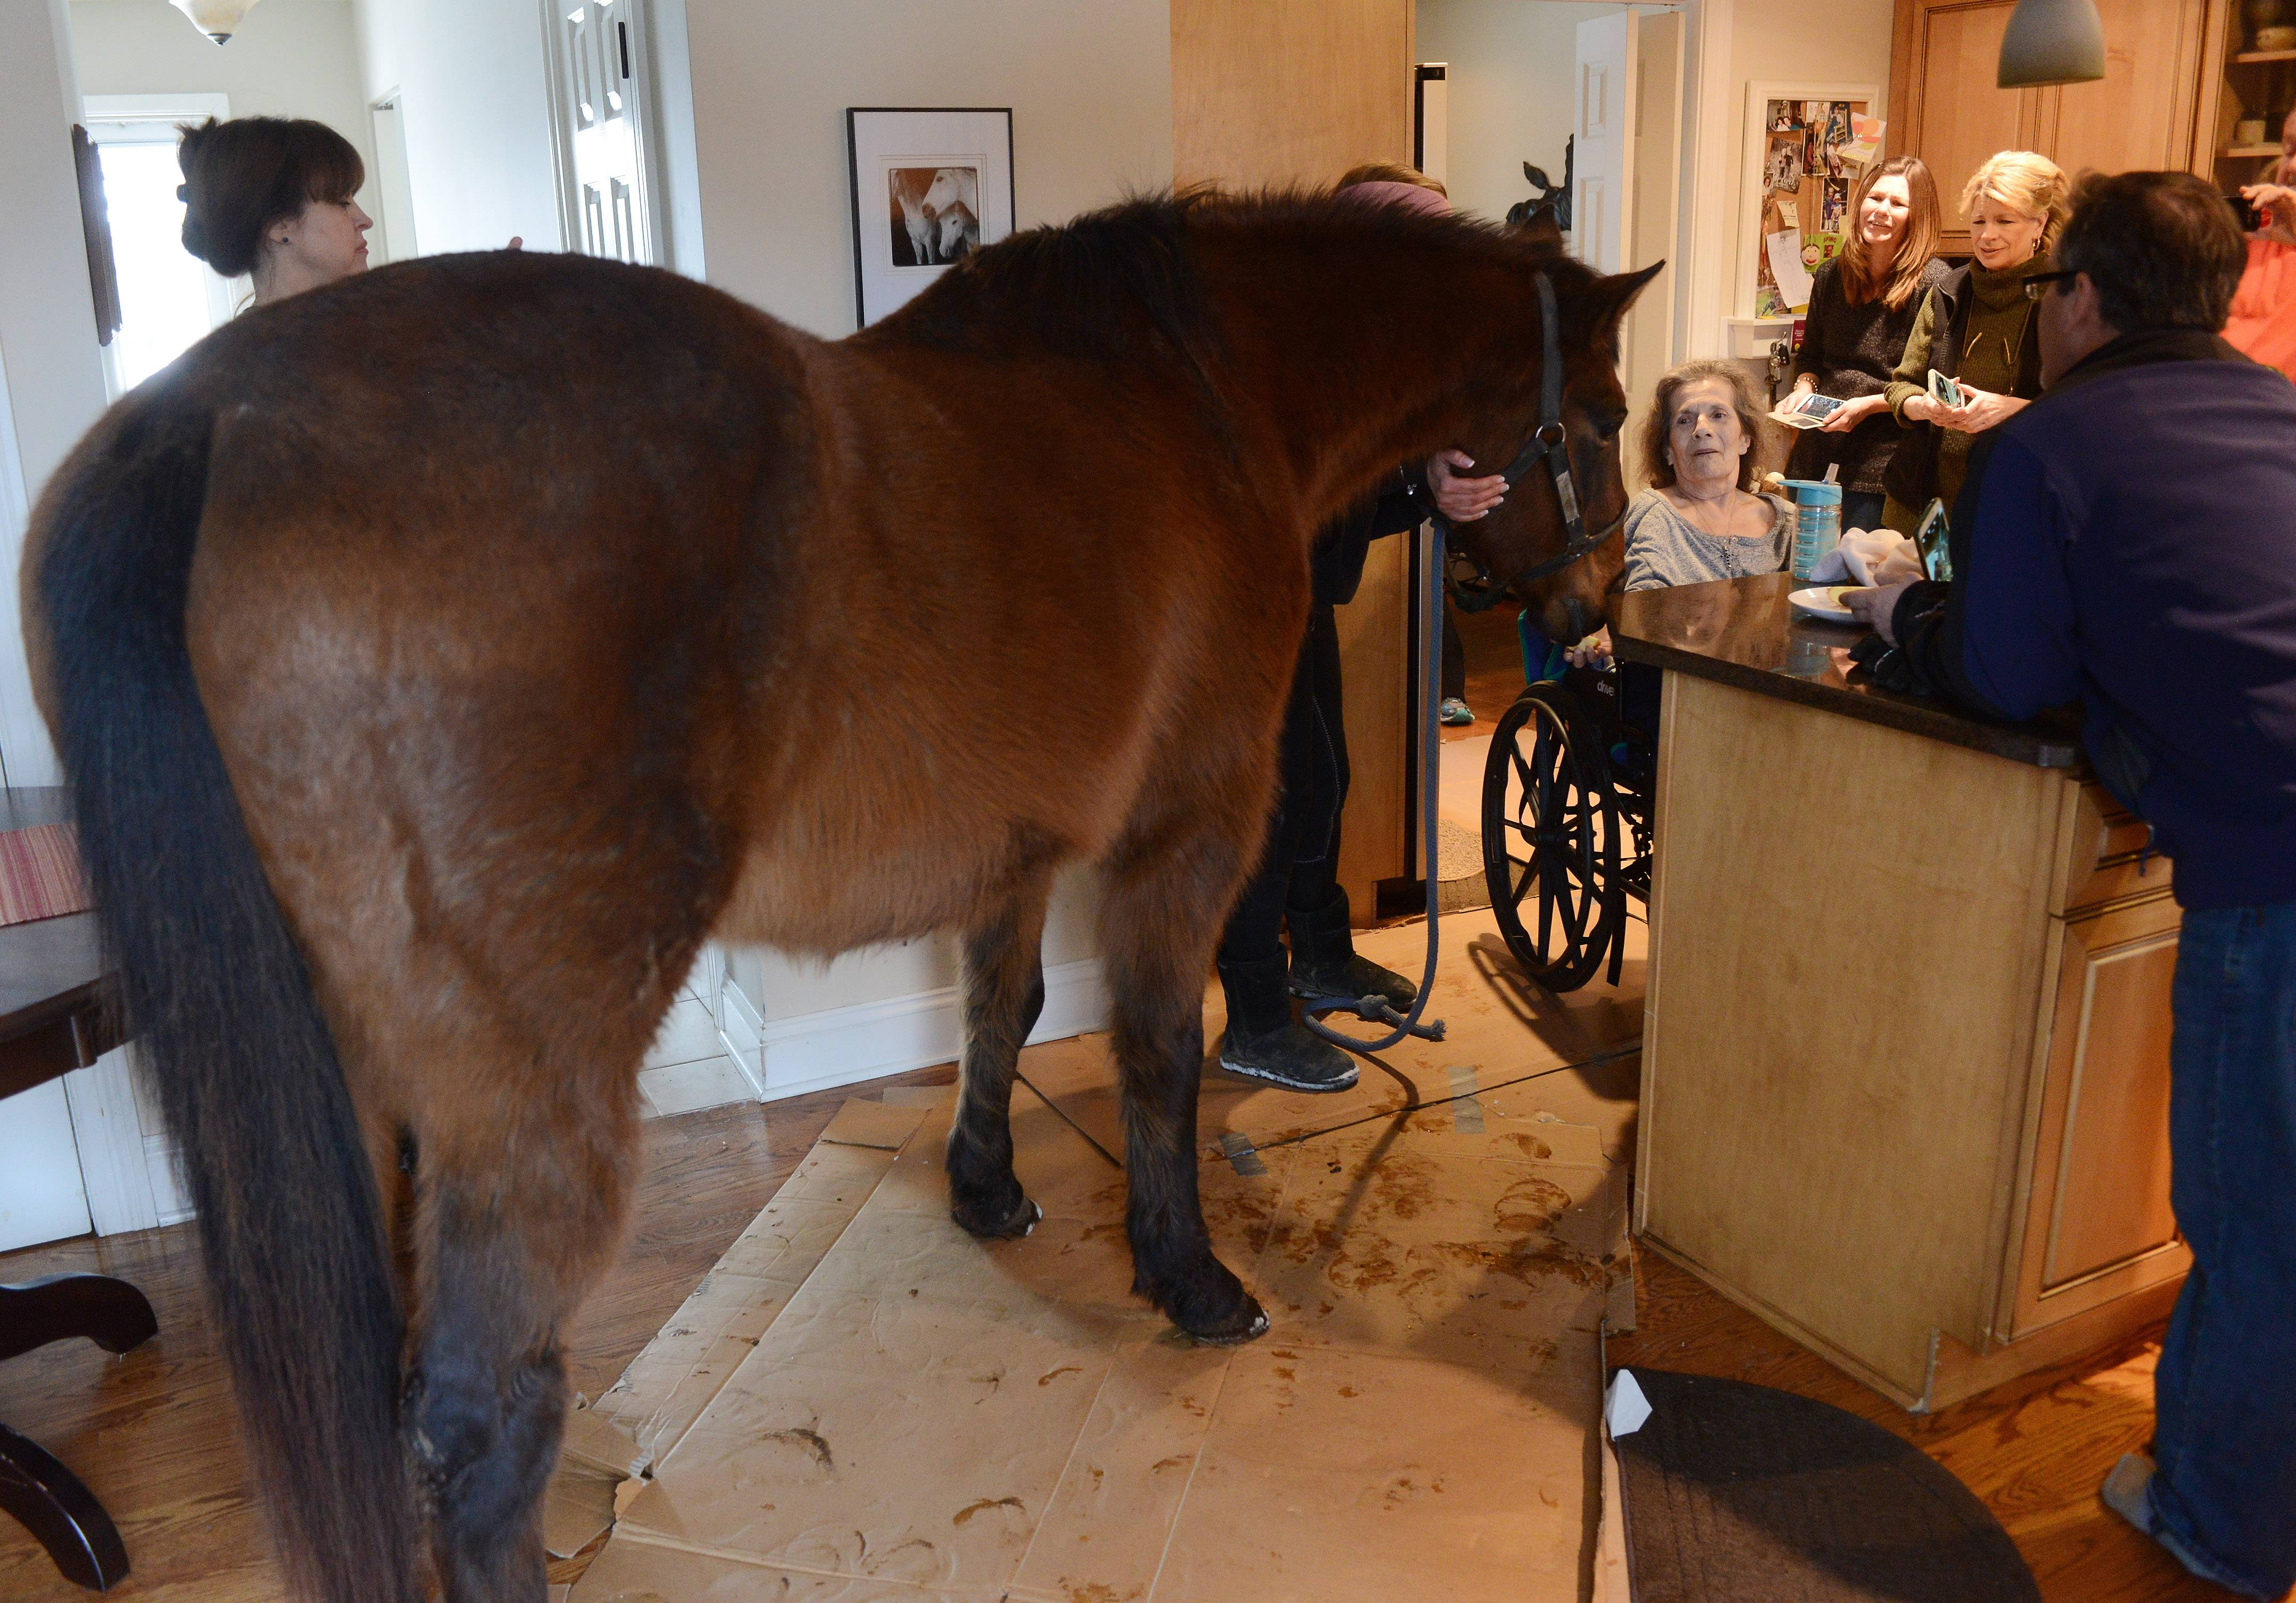 Carole Knanishu, of Arlington Heights, who has multiple sclerosis, is treated with a visit by two horses inside her home Tuesday. She is a horse enthusiast who owned a horse many years ago.